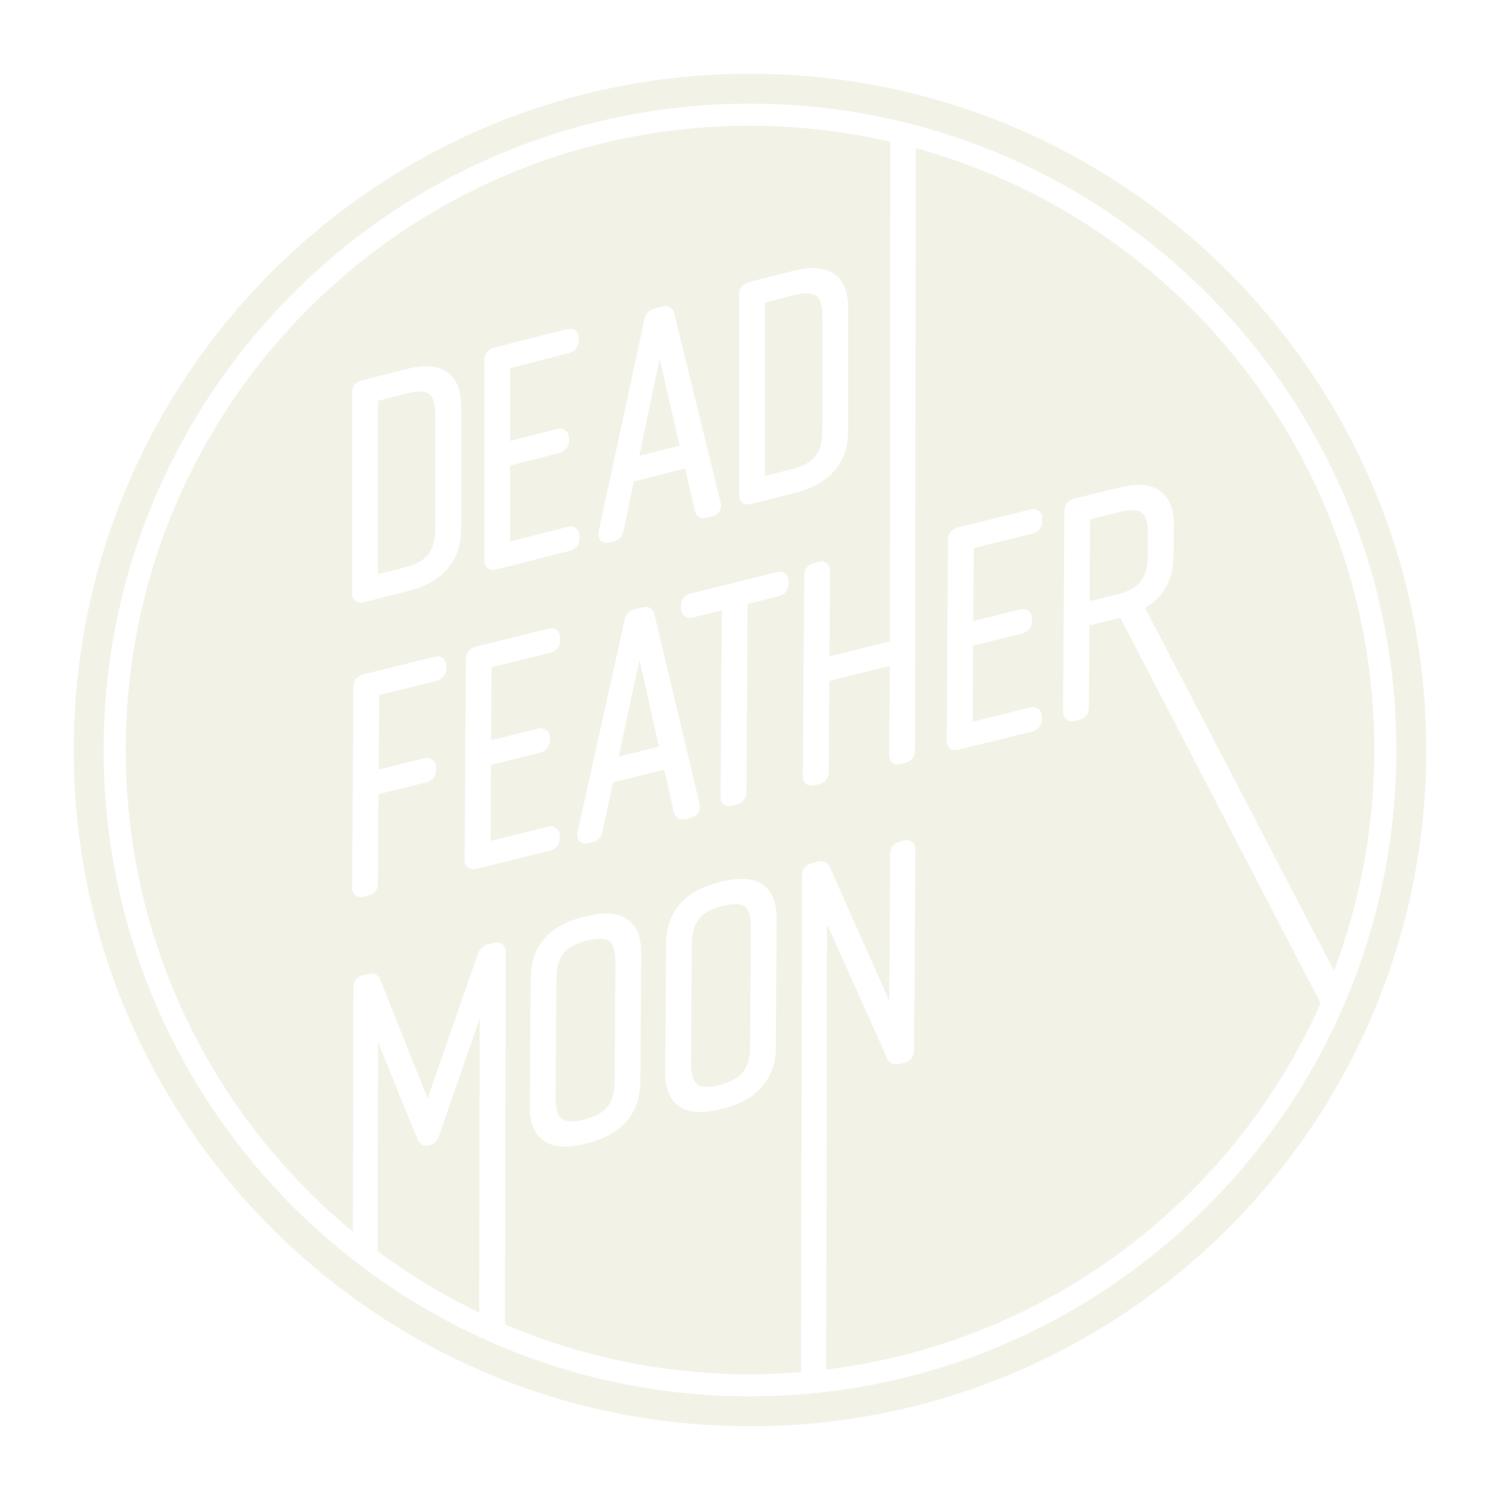 DEAD FEATHER MOON